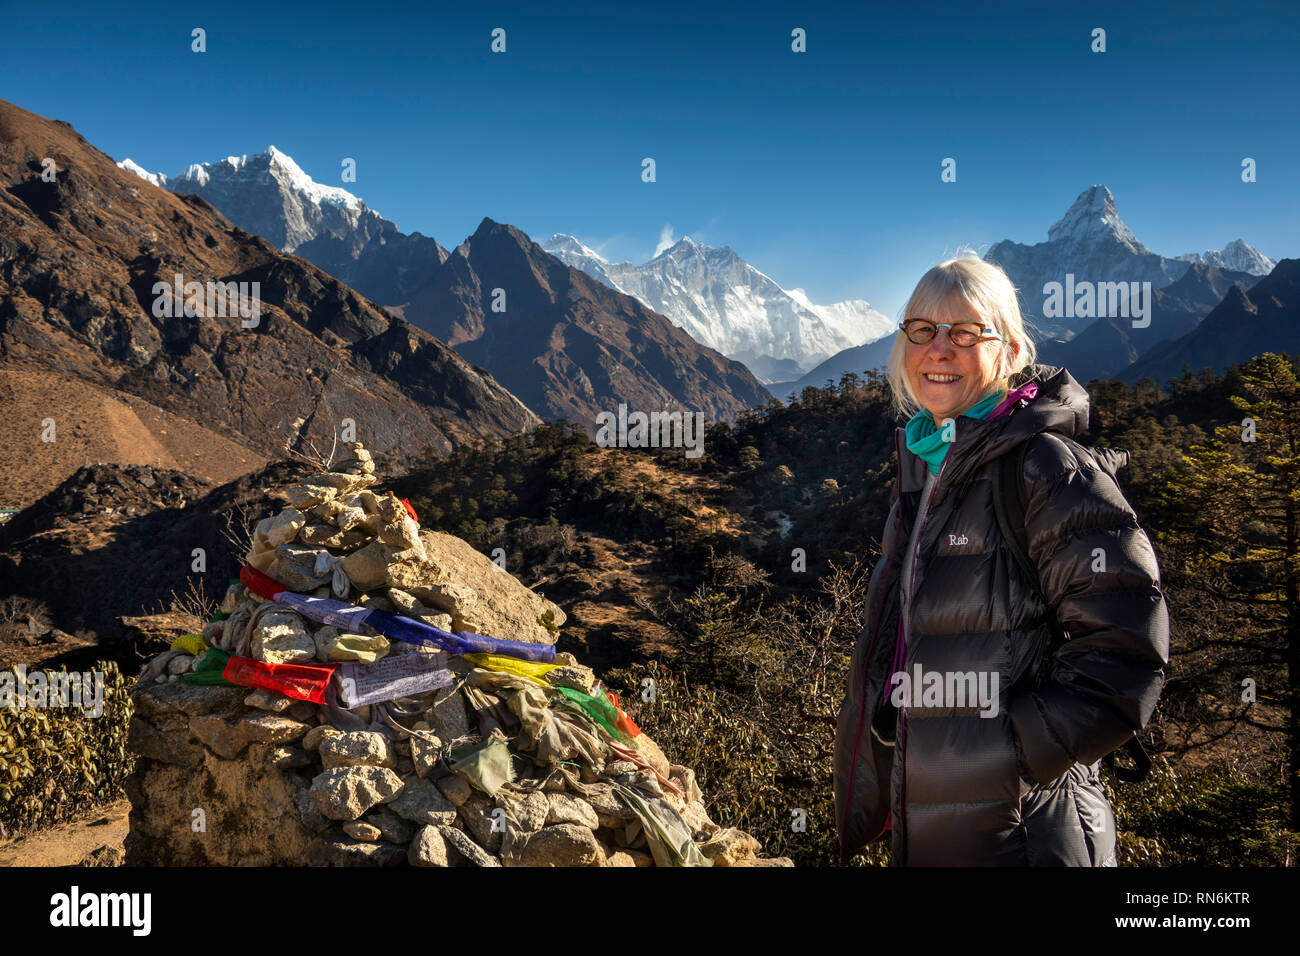 Nepal, Everest Base Camp Trek, Khumjung, senior female tourist at prayer flags tied to rough cairn of stones on mountain path - Stock Image